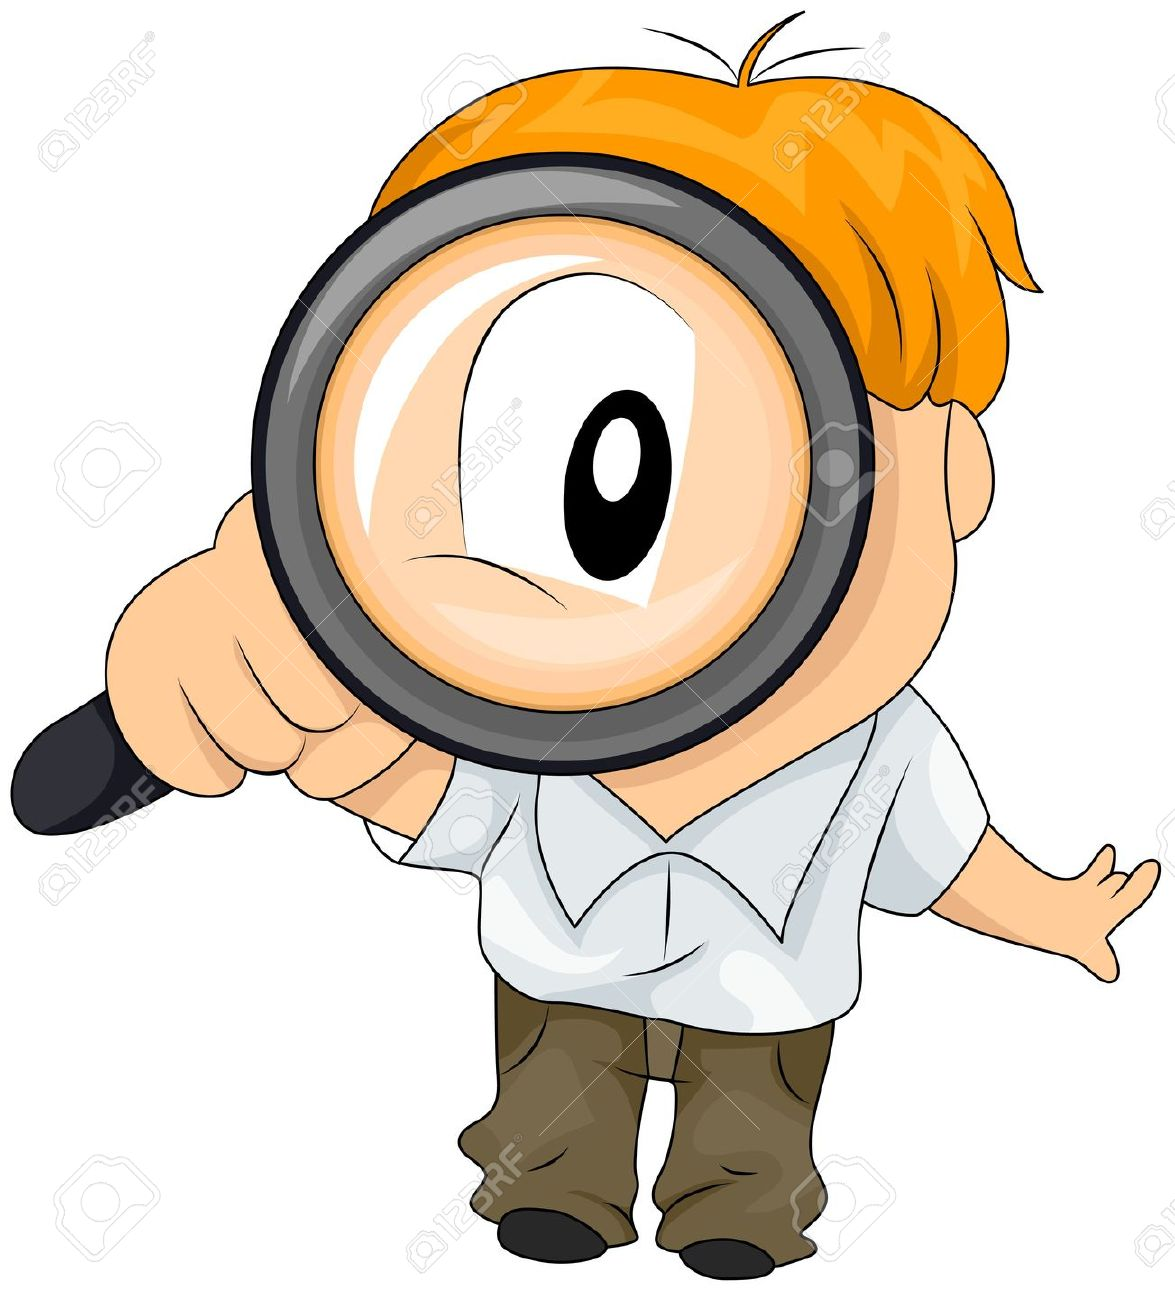 Looking through clipart - Clipground